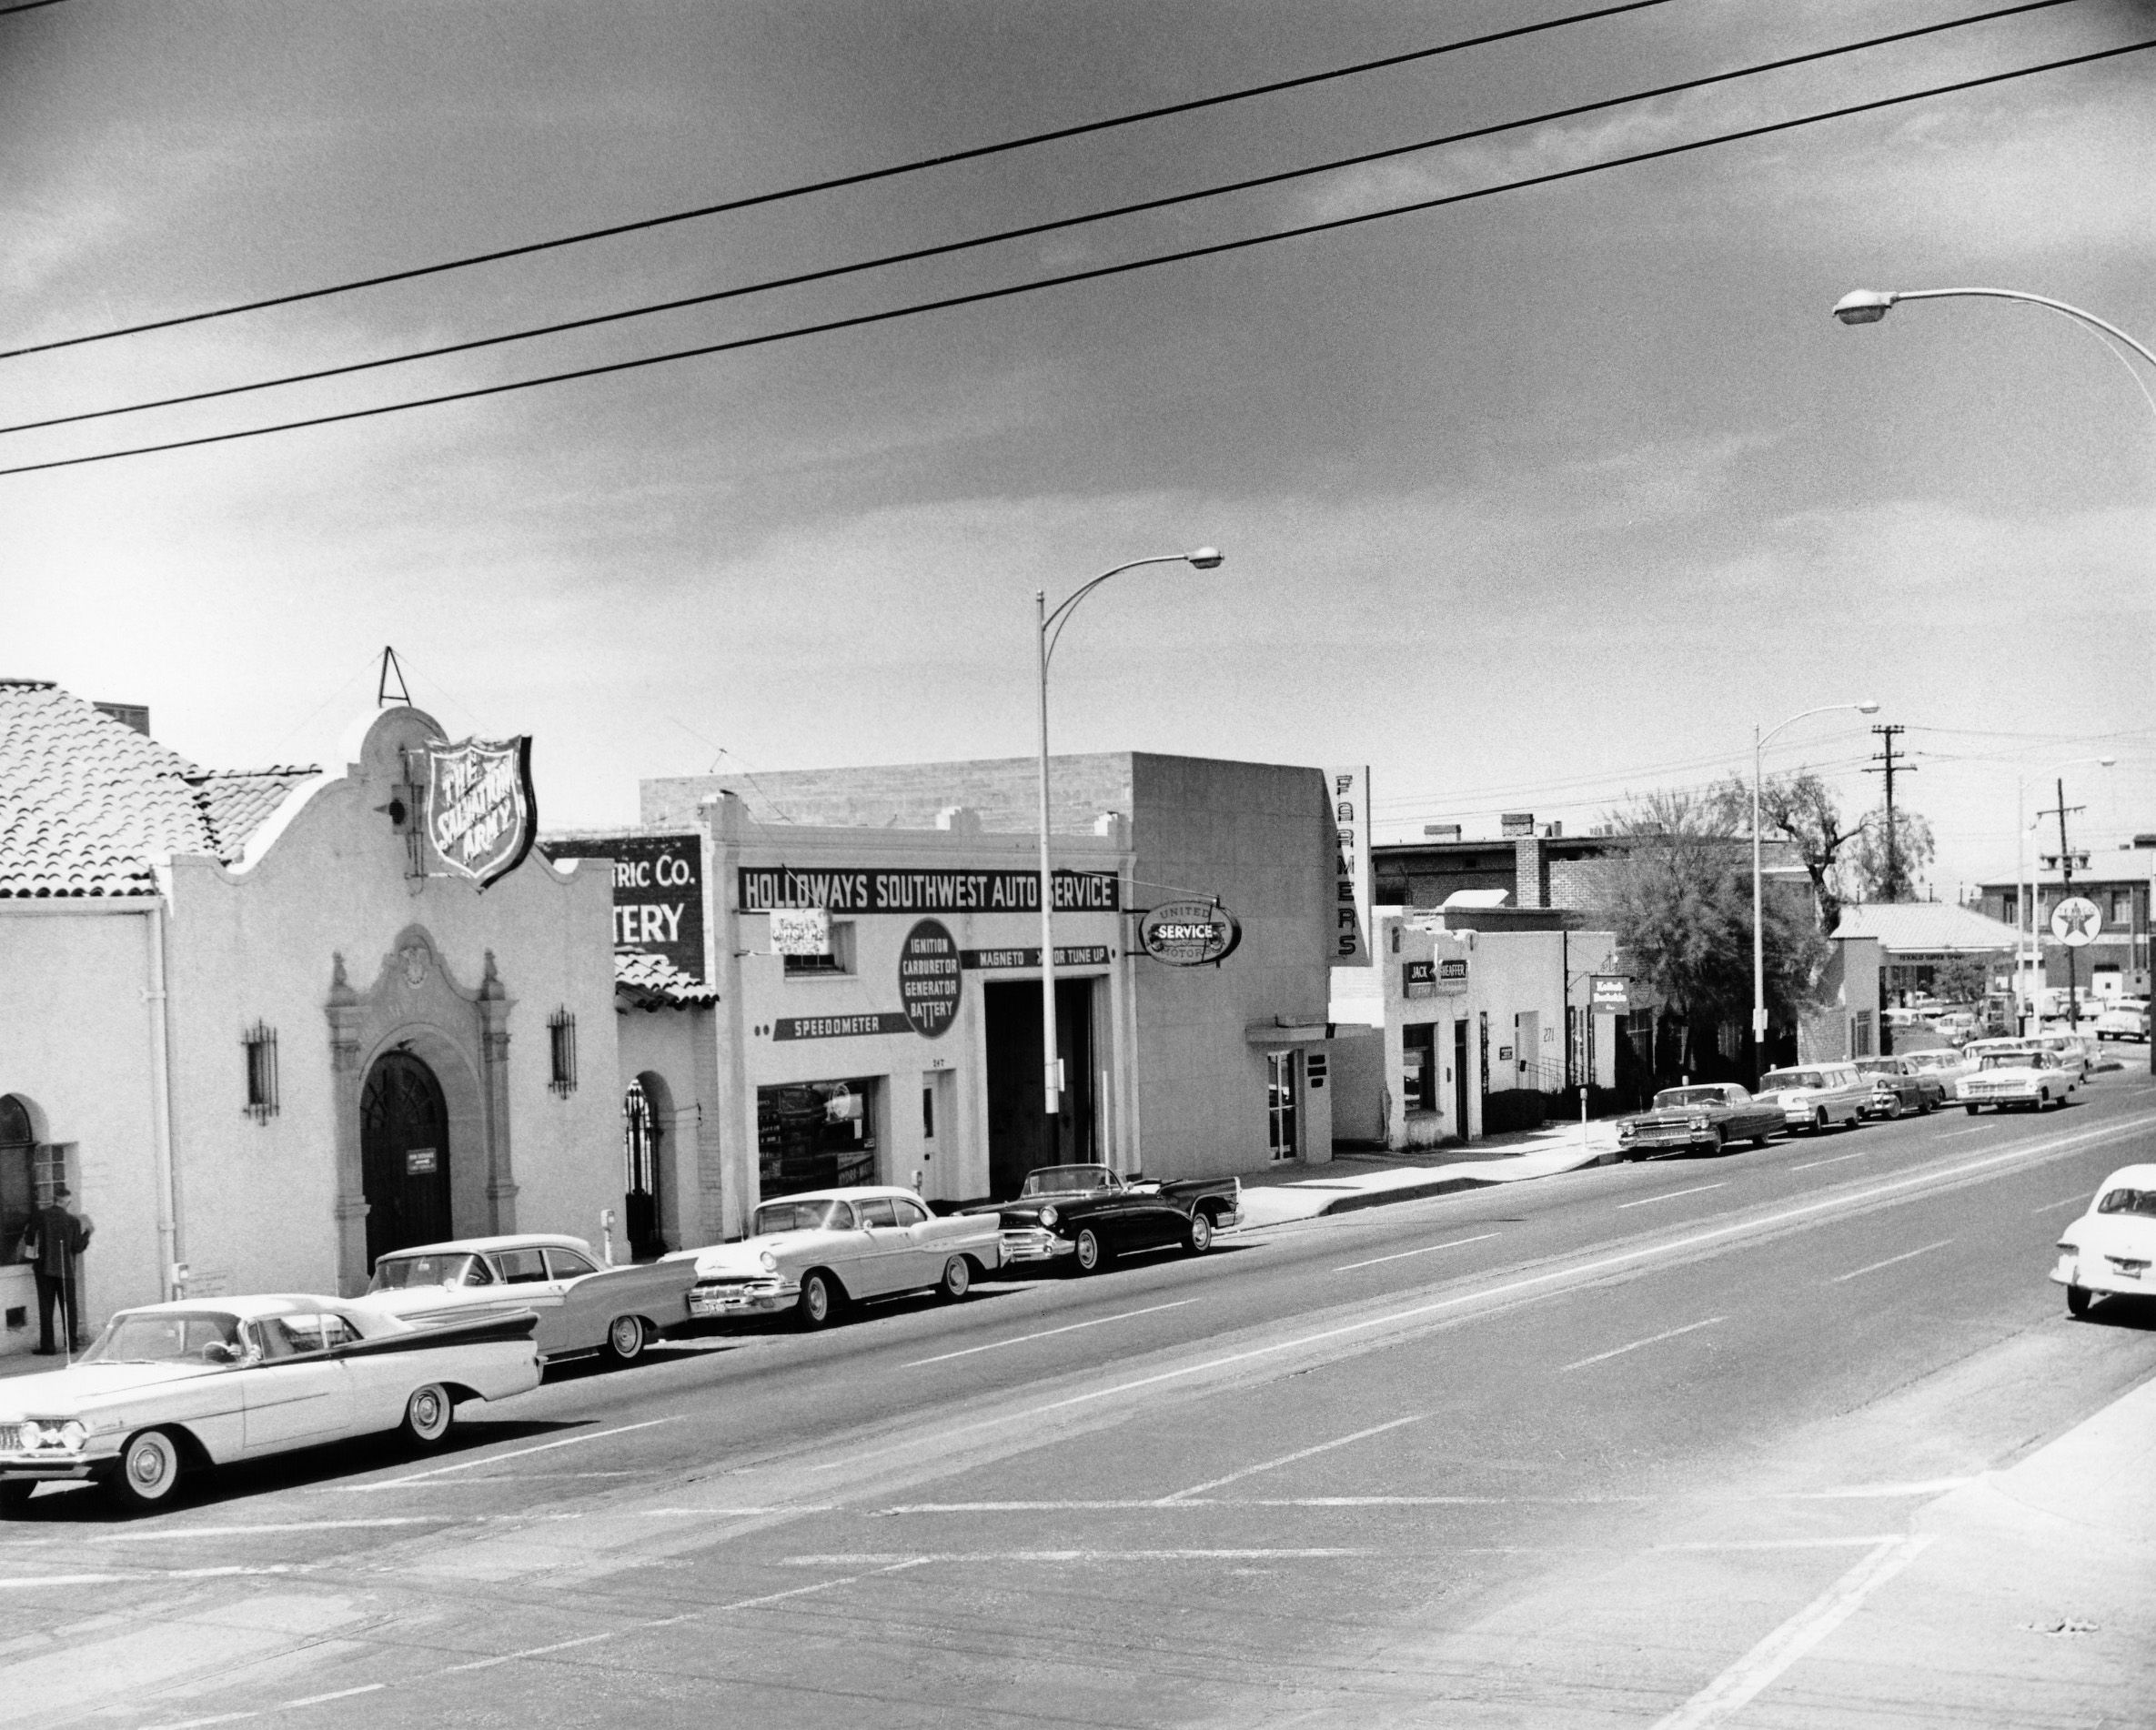 Downtown Tucson buildings in 1960. Holloways Southwest